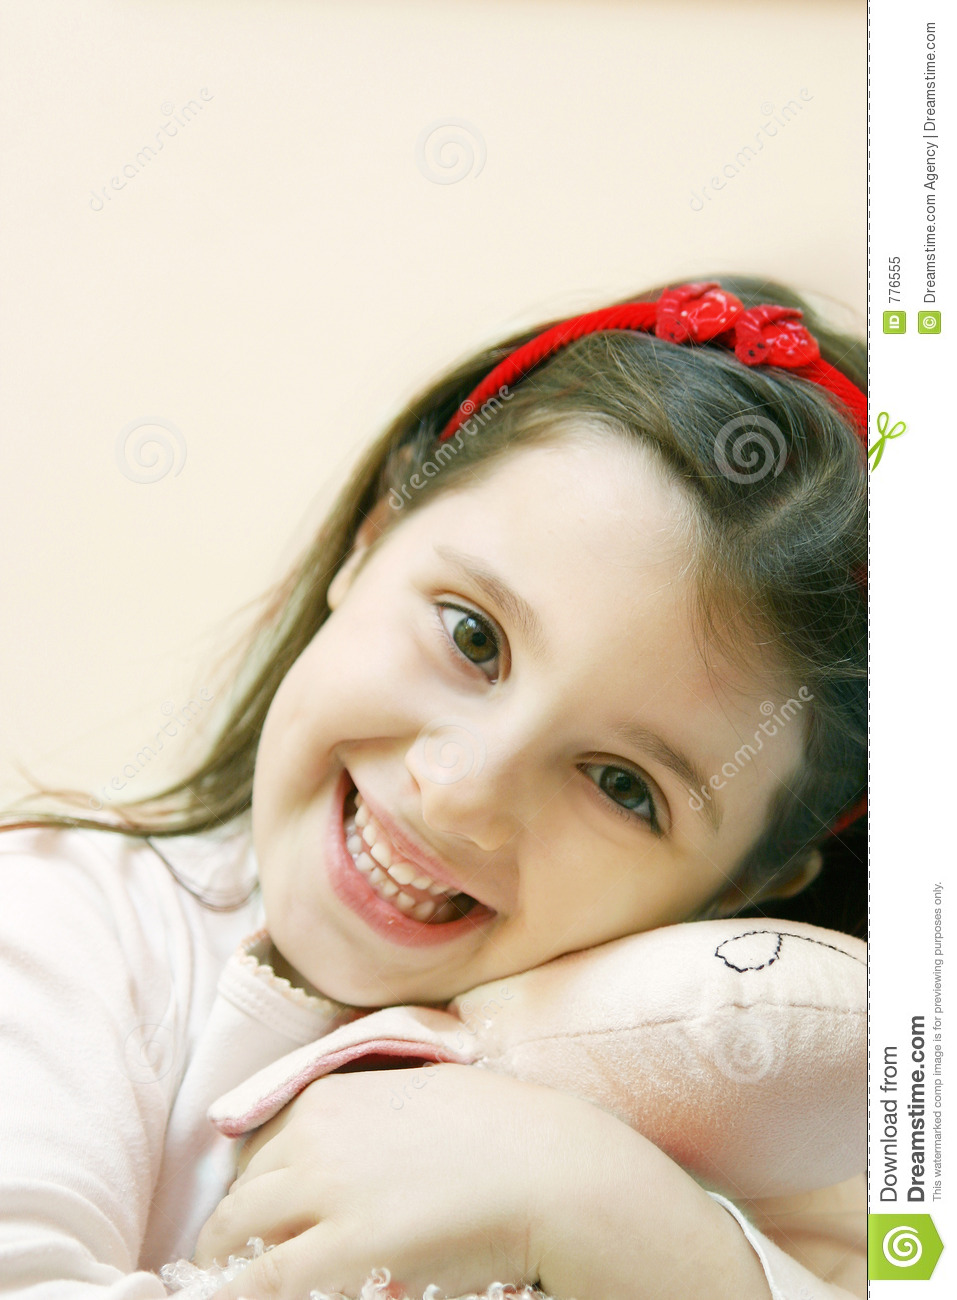 Beautiful six year old girl smiles with innocence, holding her toy